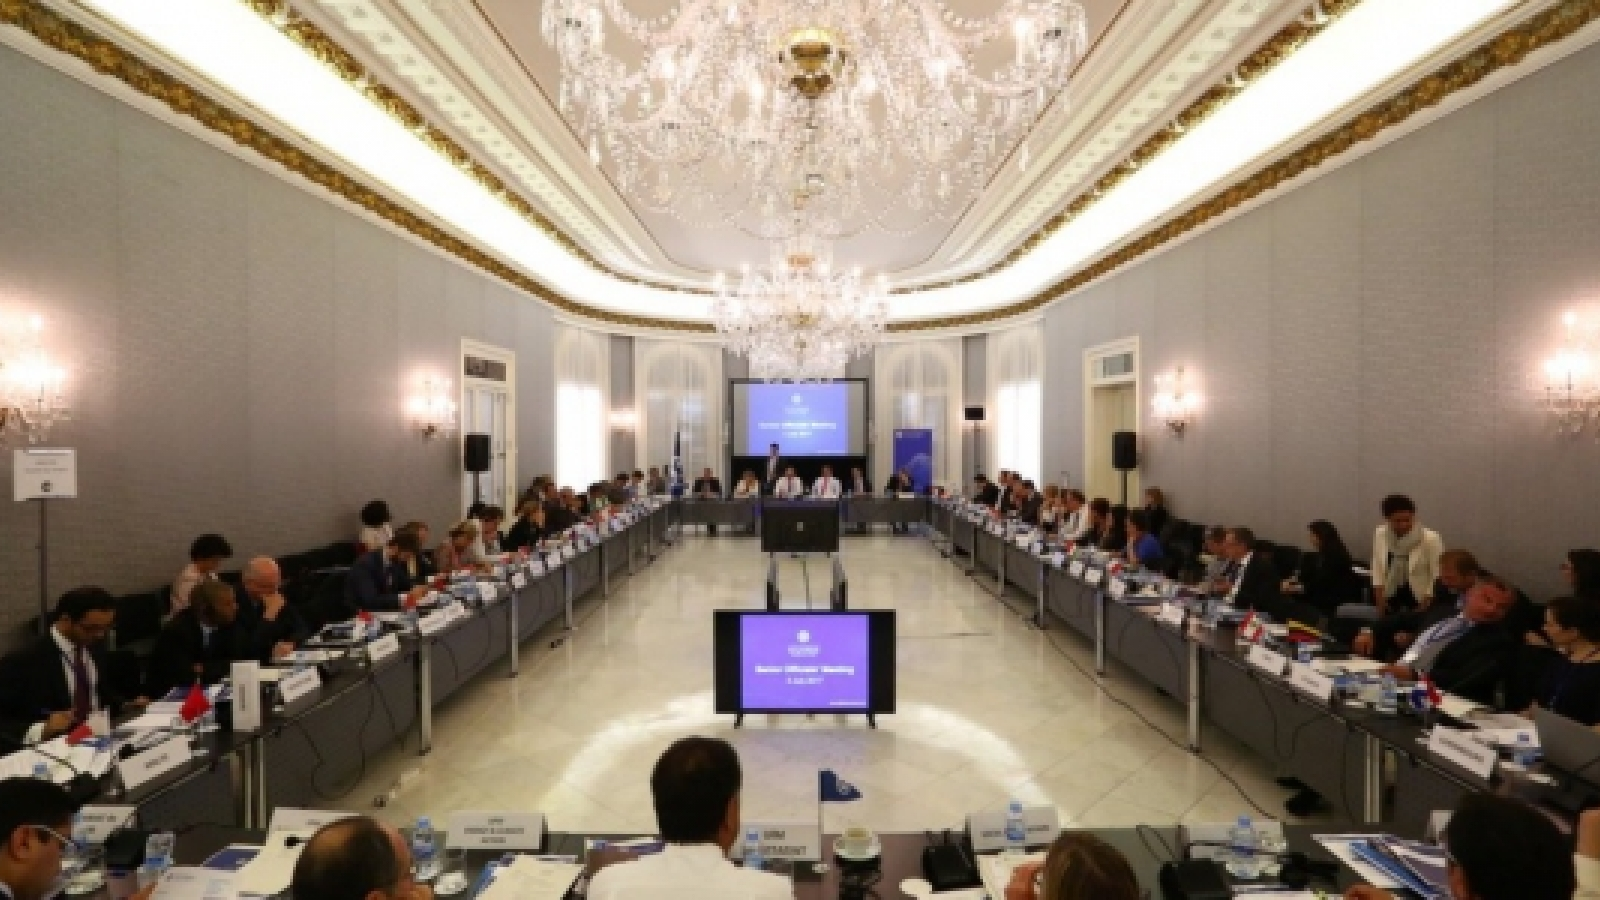 Discussing new initiatives to advance Euro-Mediterranean cooperation: UfM Senior Officials meet in Barcelona